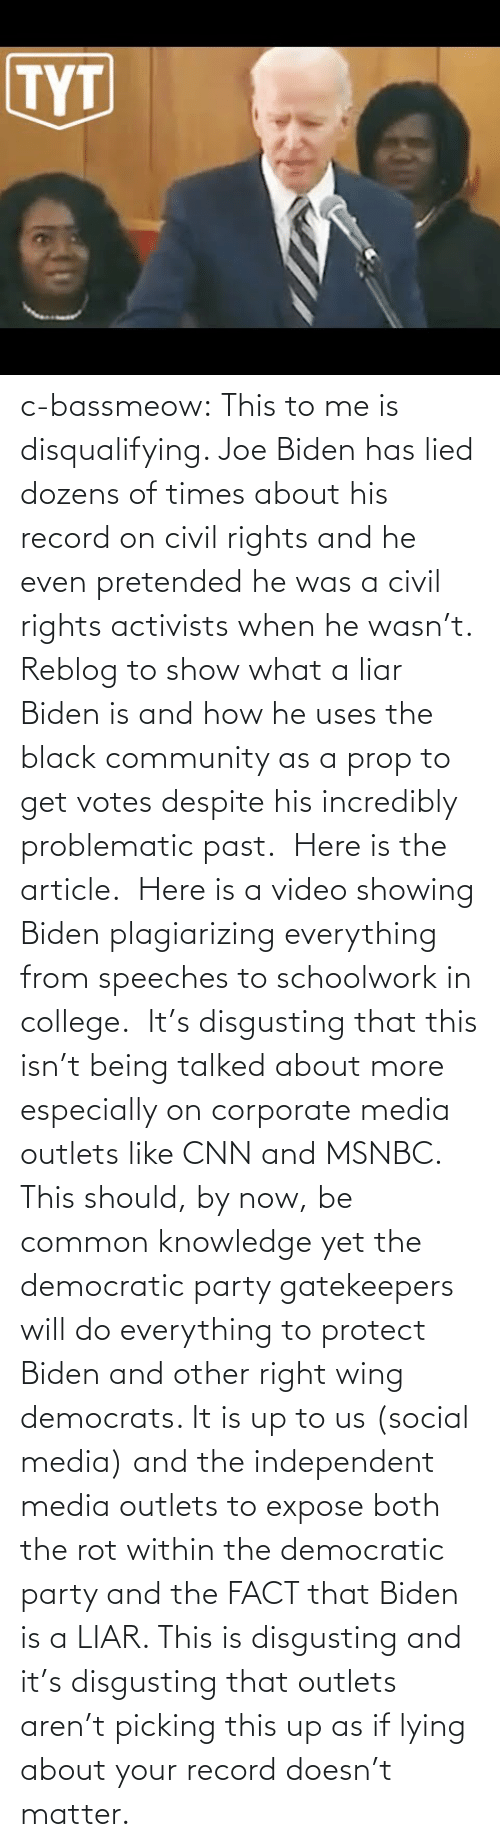 Common: c-bassmeow: This to me is disqualifying. Joe Biden has lied dozens of times about his record on civil rights and he even pretended he was a civil rights activists when he wasn't. Reblog to show what a liar Biden is and how he uses the black community as a prop to get votes despite his incredibly problematic past.   Here is the article.   Here is a video showing Biden plagiarizing everything from speeches to schoolwork in college.   It's disgusting that this isn't being talked about more especially on corporate media outlets like CNN and MSNBC. This should, by now, be common knowledge yet the democratic party gatekeepers will do everything to protect Biden and other right wing democrats. It is up to us (social media) and the independent media outlets to expose both the rot within the democratic party and the FACT that Biden is a LIAR. This is disgusting and it's disgusting that outlets aren't picking this up as if lying about your record doesn't matter.